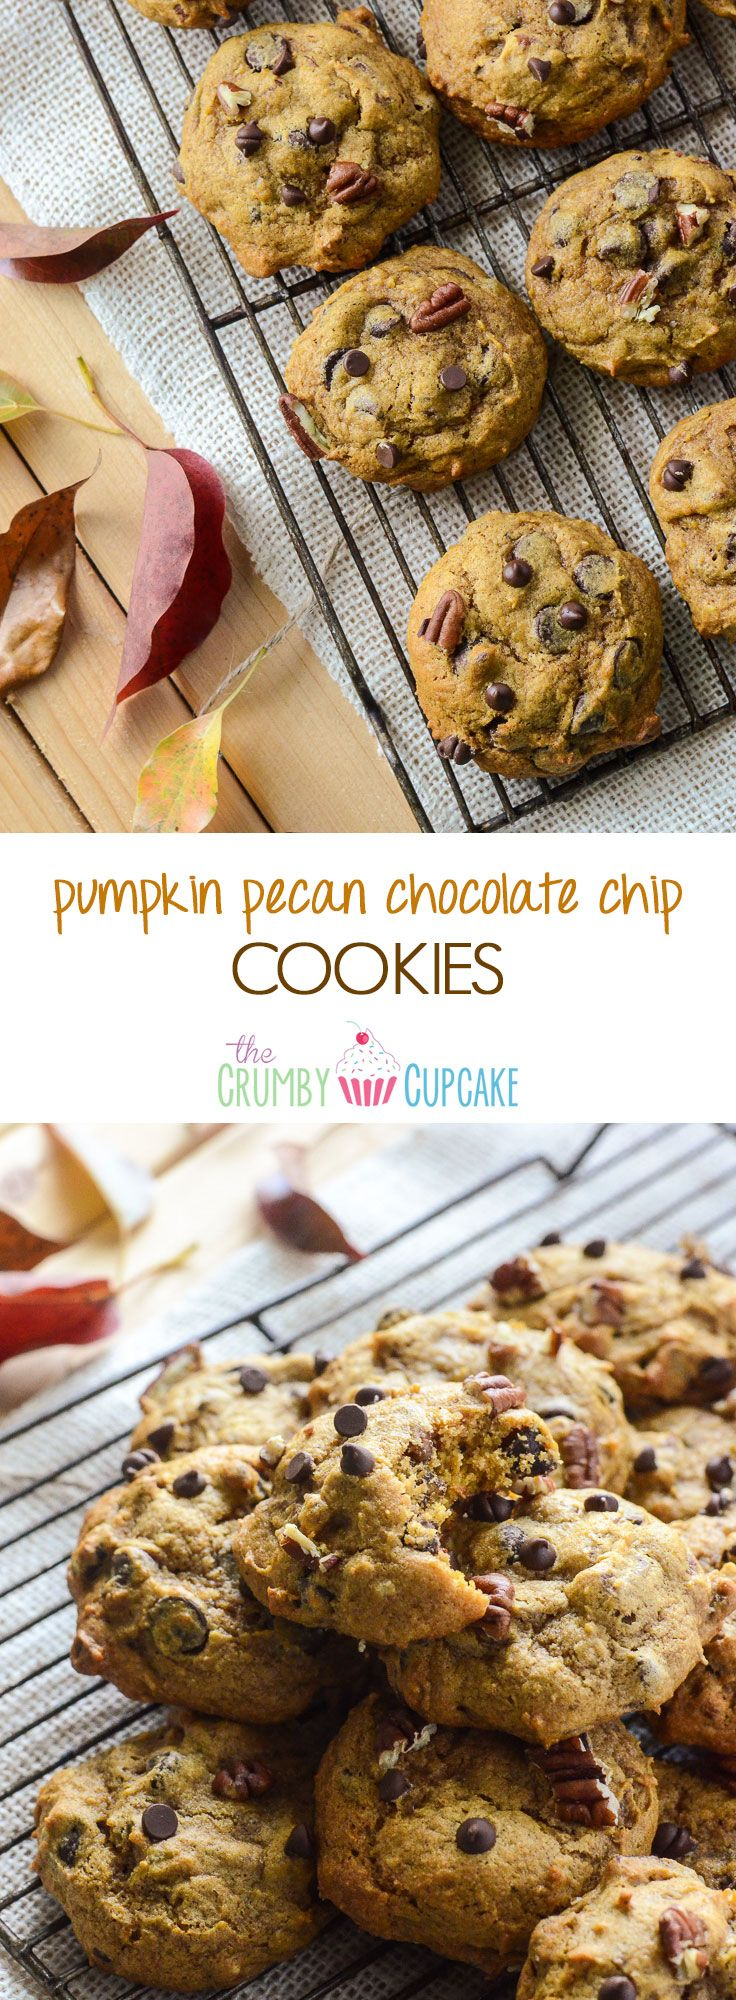 Pumpkin Pecan Chocolate Chip Cookies | A soft, cakey fall version of everyone's favorite cookie, packed with pumpkin & spice flavors! You won't be able to stop at one!